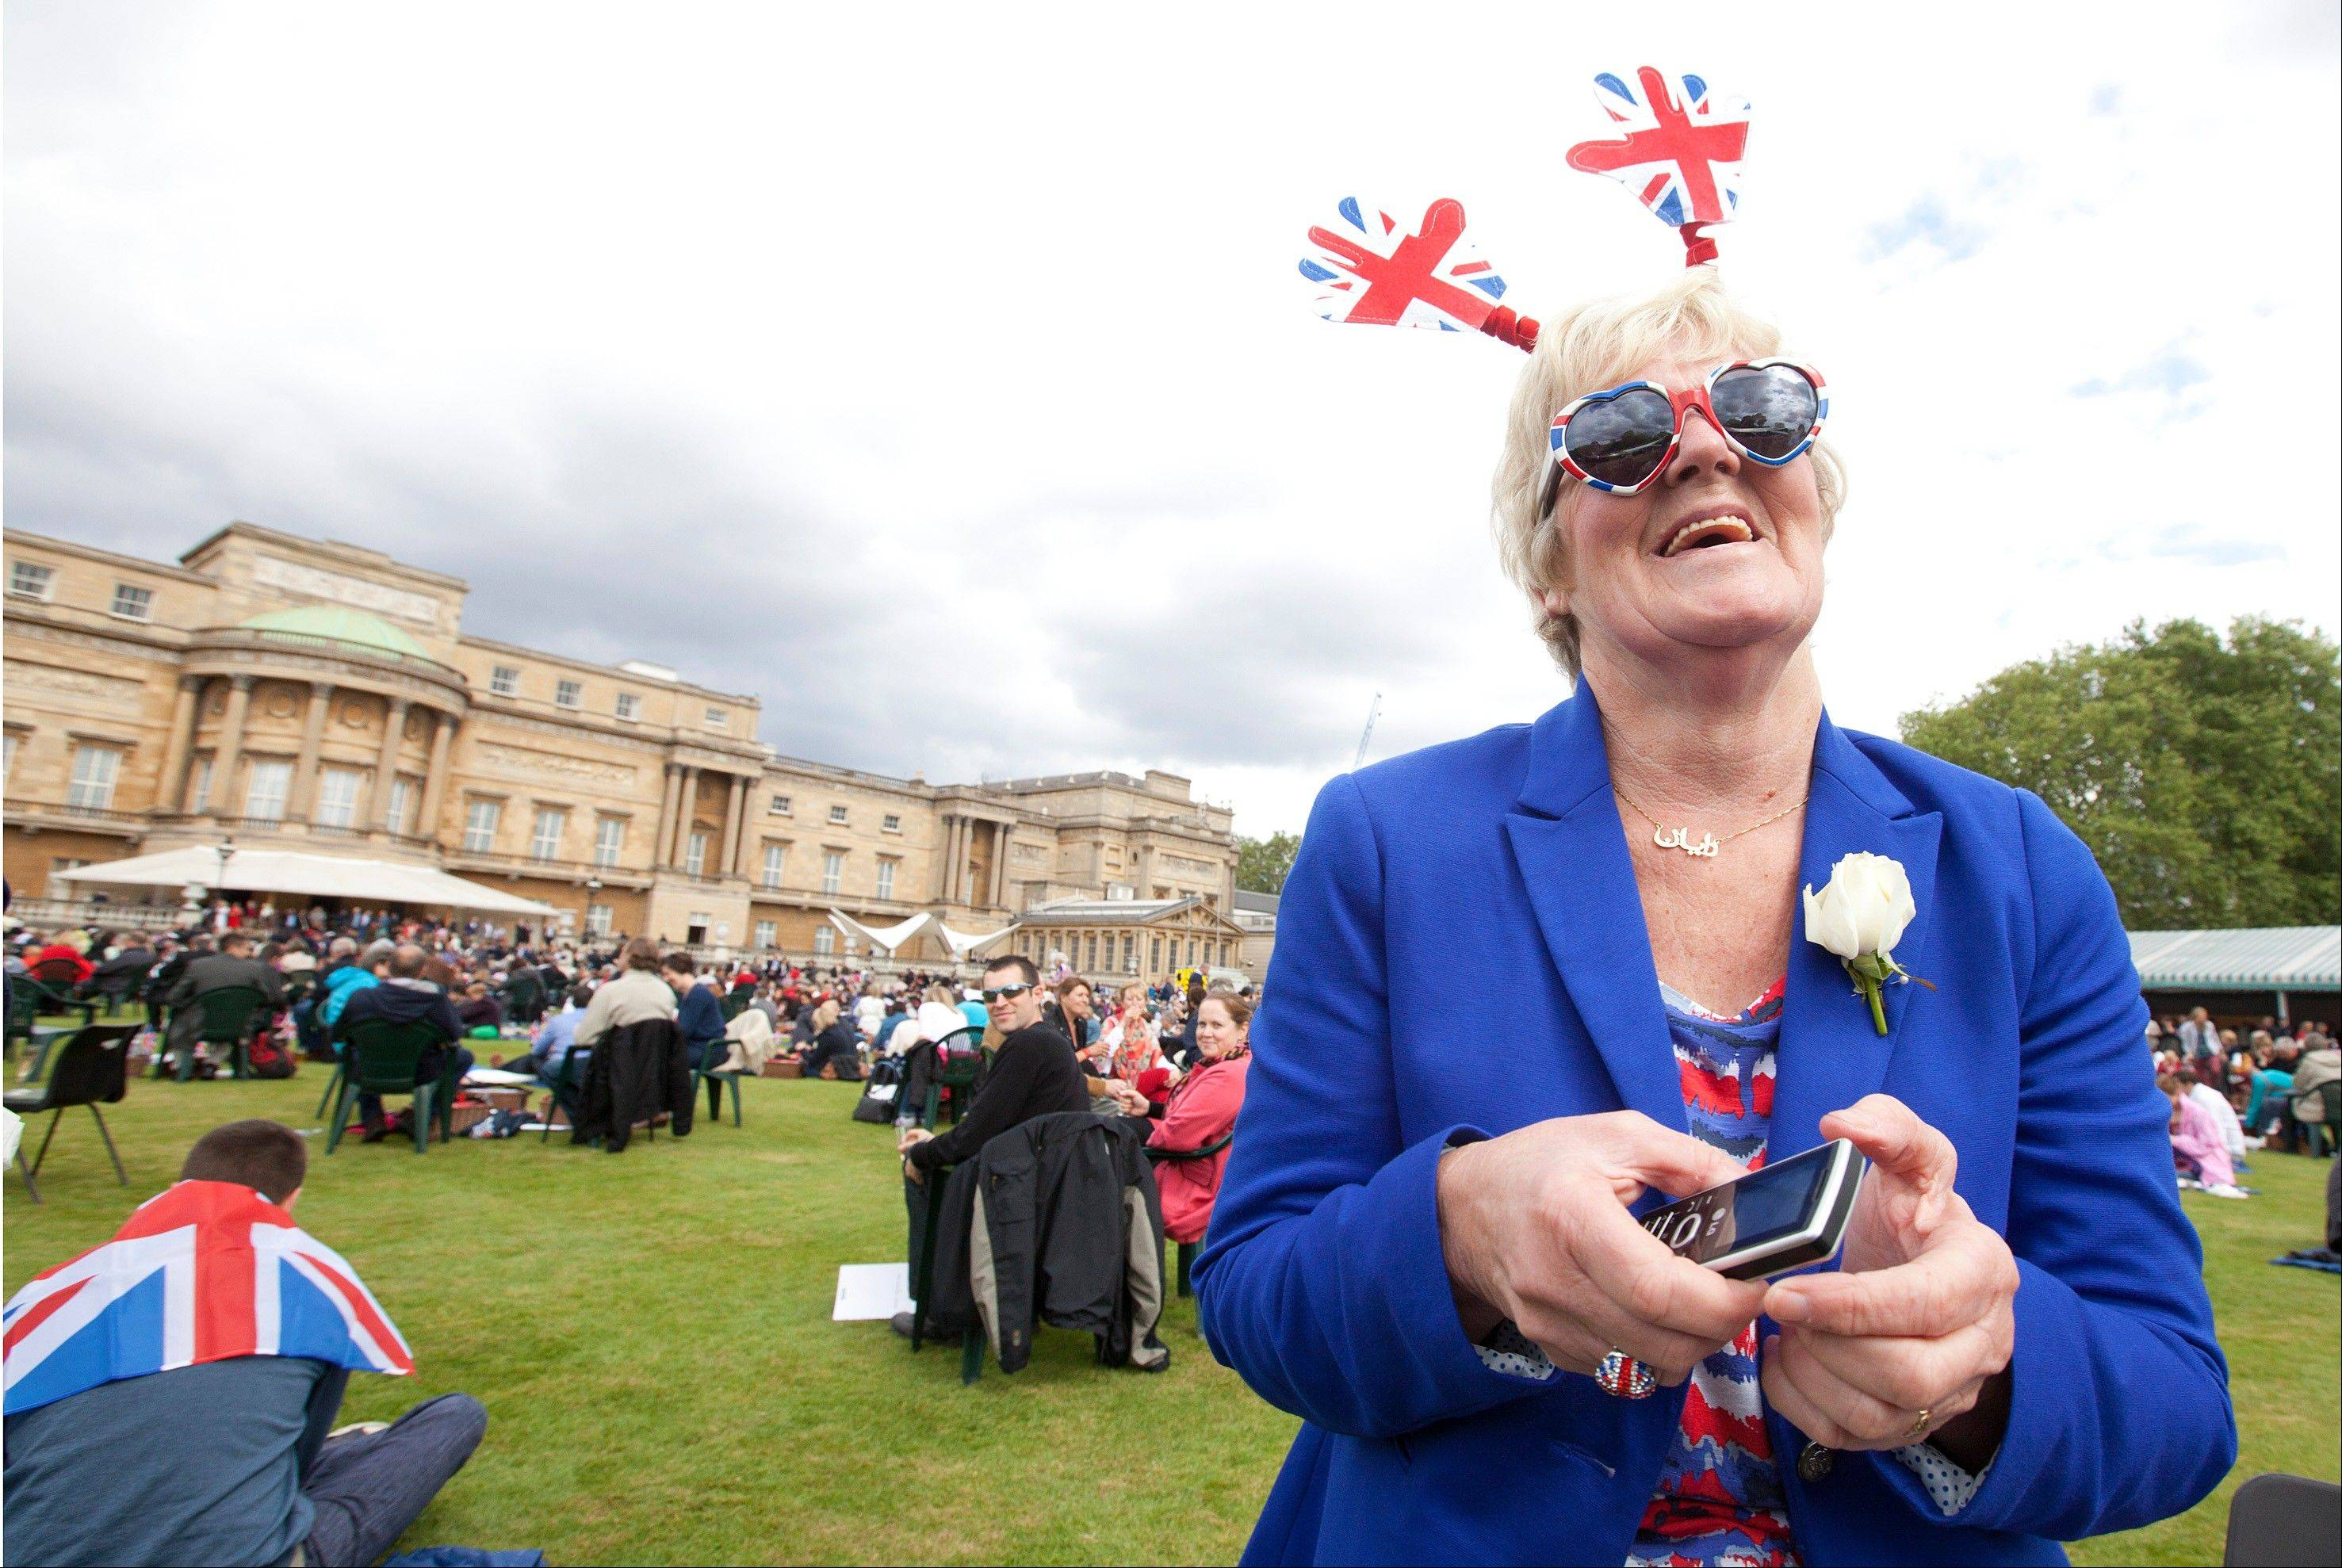 Diane Dourish from Anick in the north of England enjoys the special picnic in the grounds of Buckingham Palace prior to the Queen's Diamond Jubilee celebration concert in London, Monday, June 4, 2012.